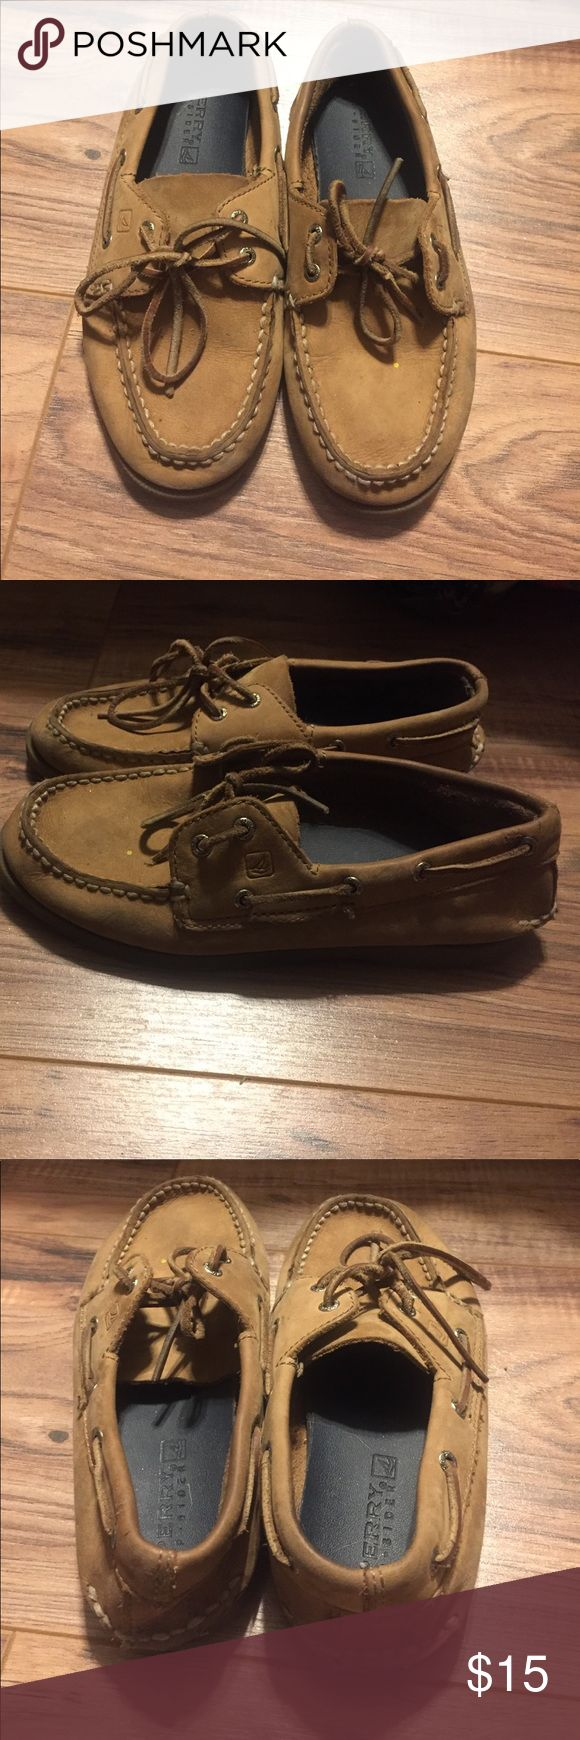 Boys Sperry Top Sider Tan colored sperry top sider little boys size 1. Good condition. Well loved and broken in still lots of life left in them. Sperry Top-Sider Shoes